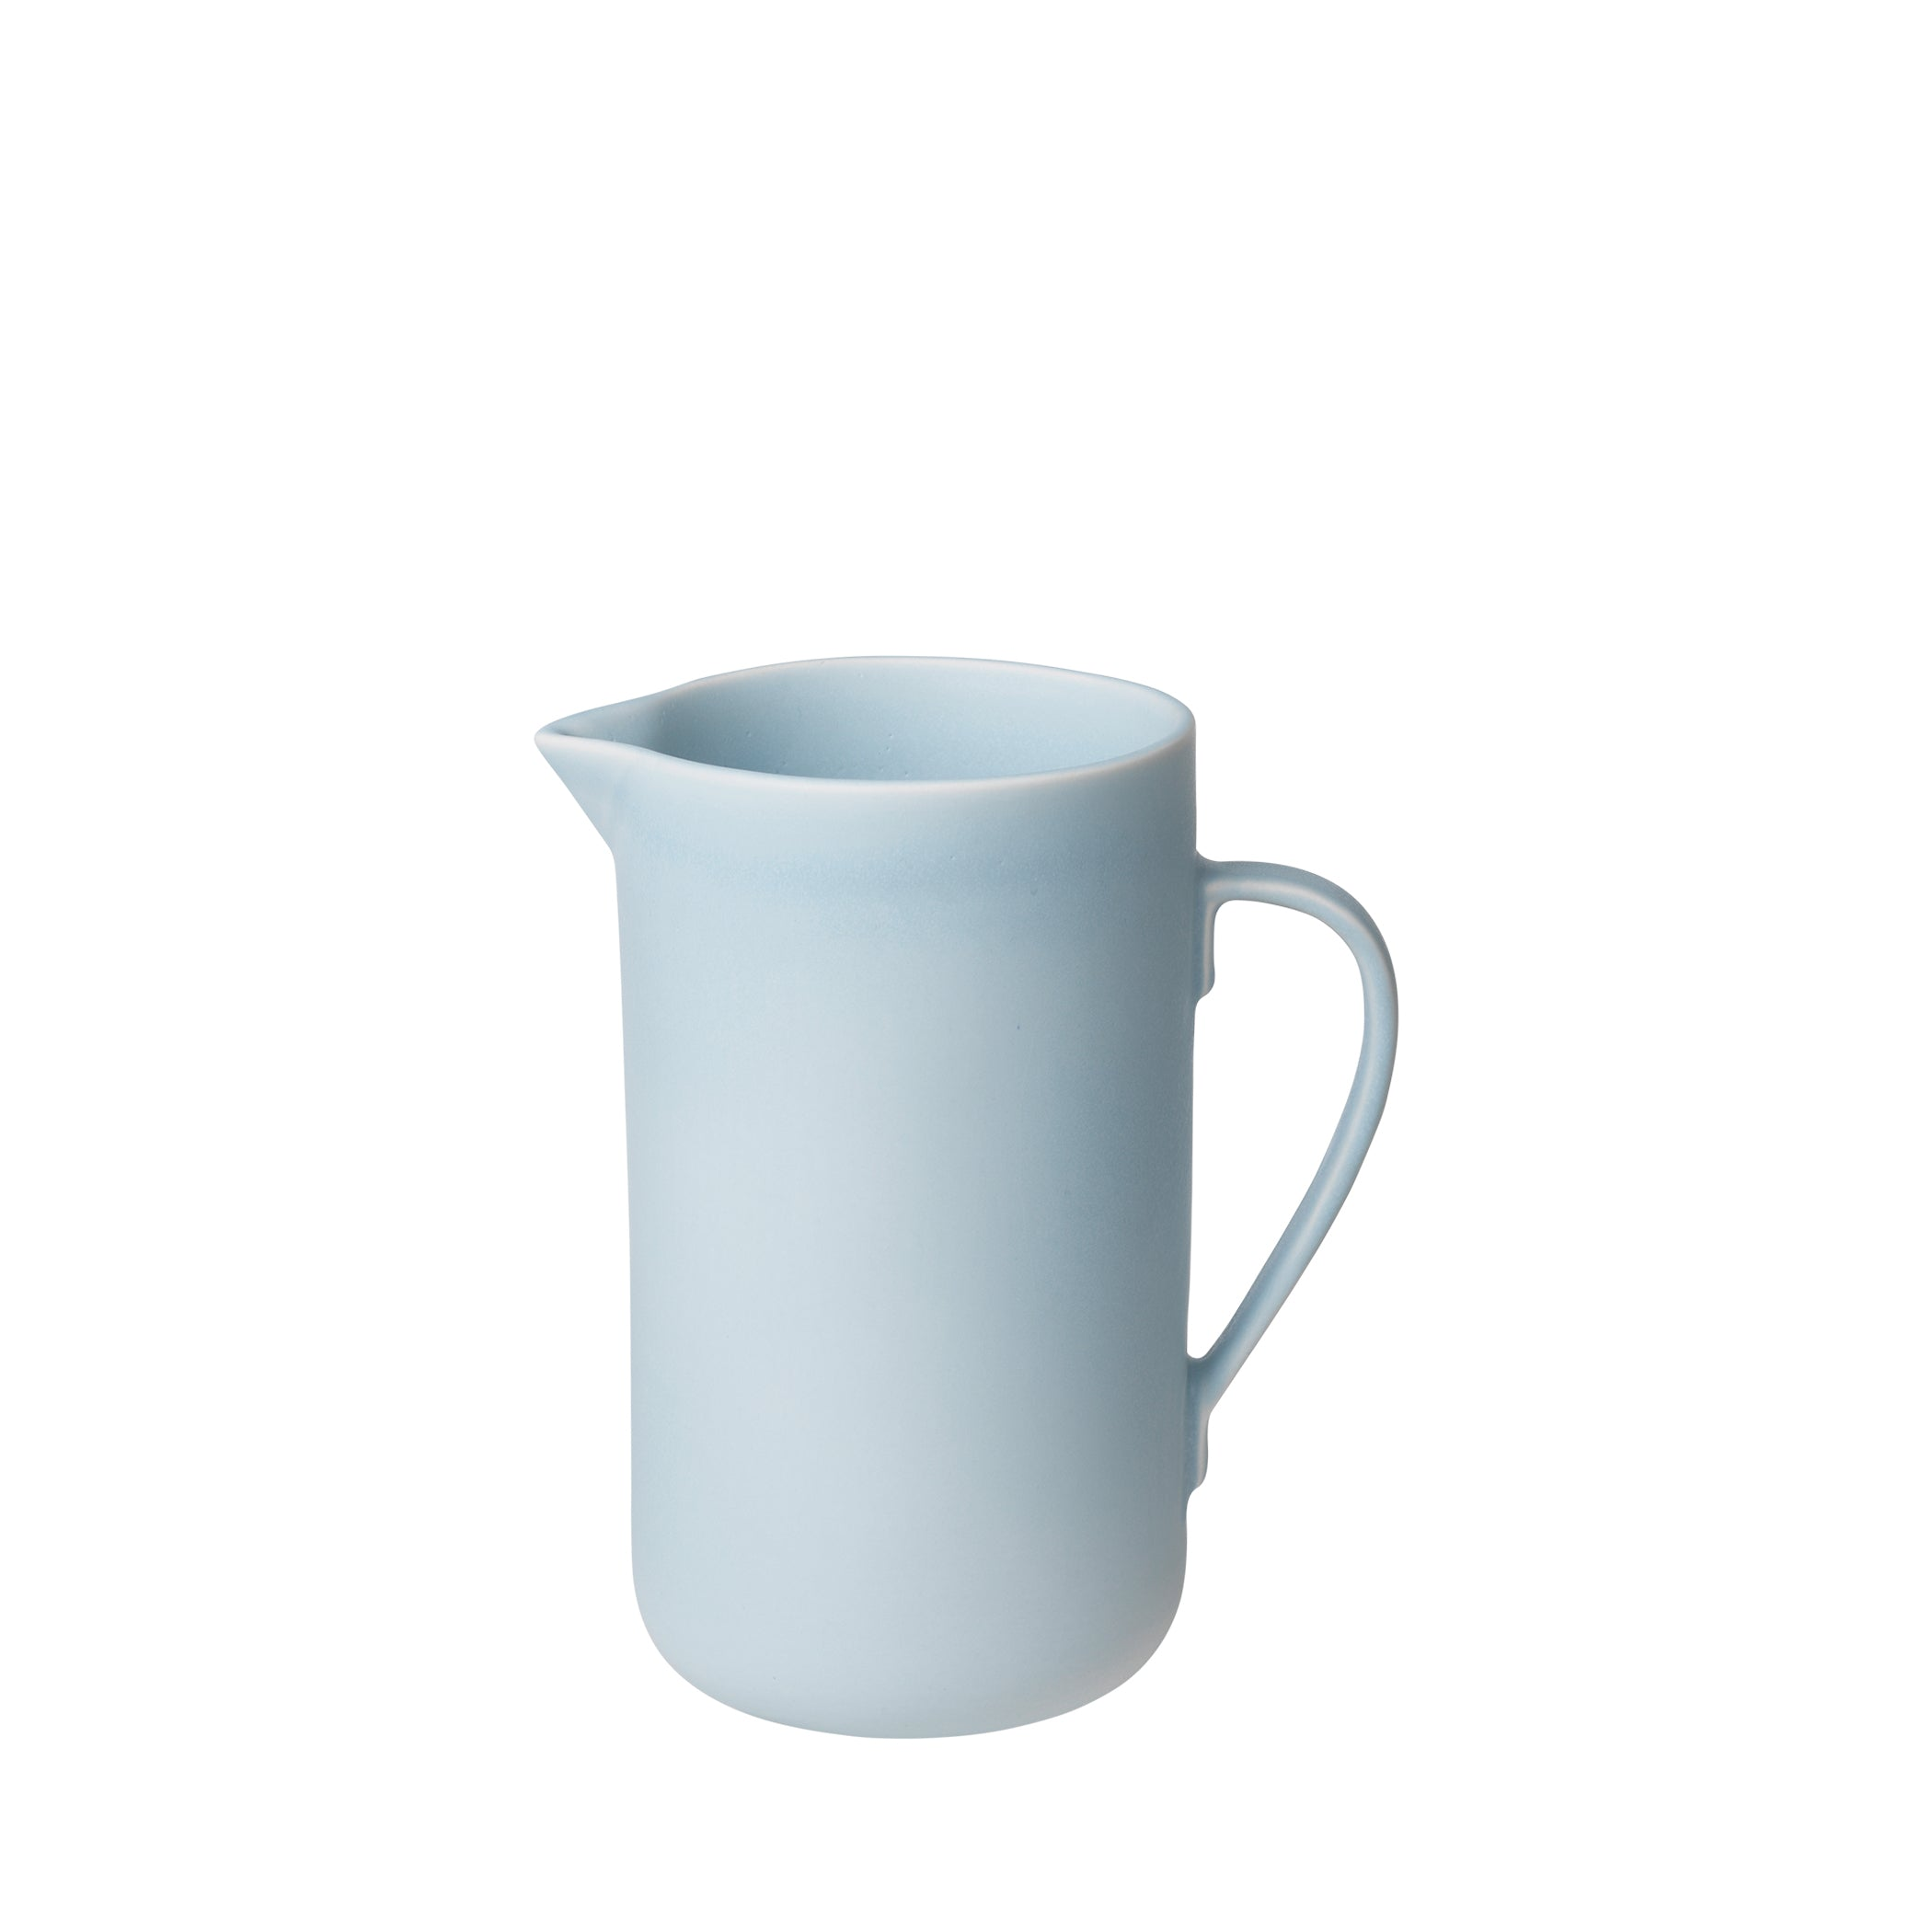 PISU 15 SKY BLUE PITCHER ceramic